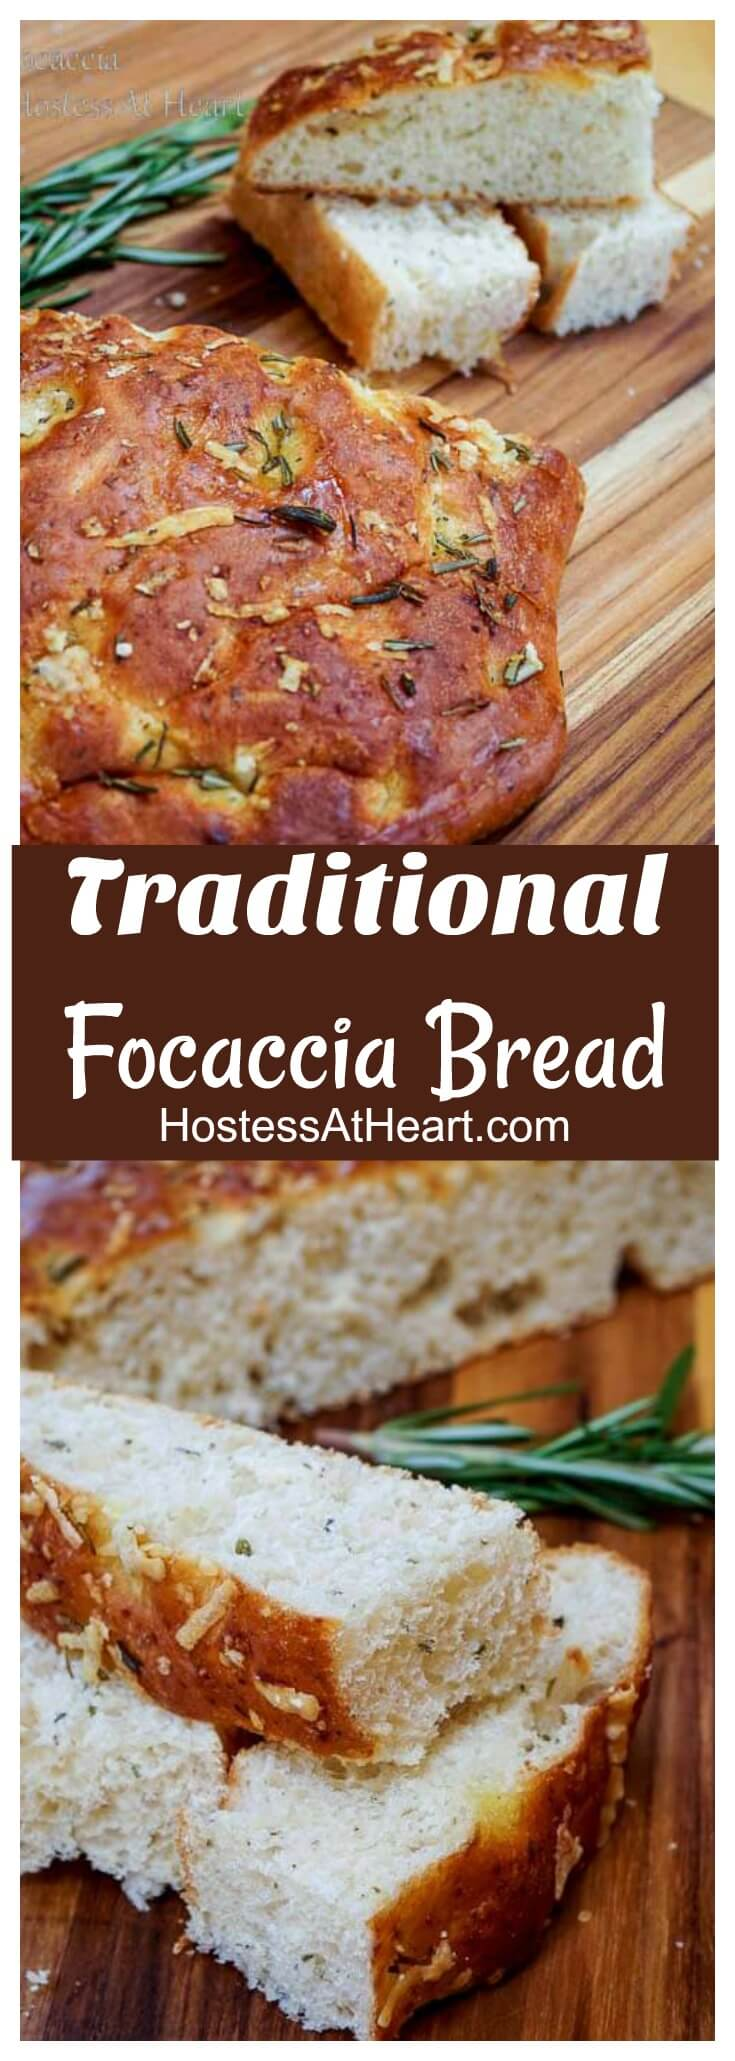 Traditional Focaccia is a great bread that can stand alone or goes great with a meat and cheese tray or a big bowl of pasta. #bread, #breadrecipes, #homemadebread #baking #focaccia